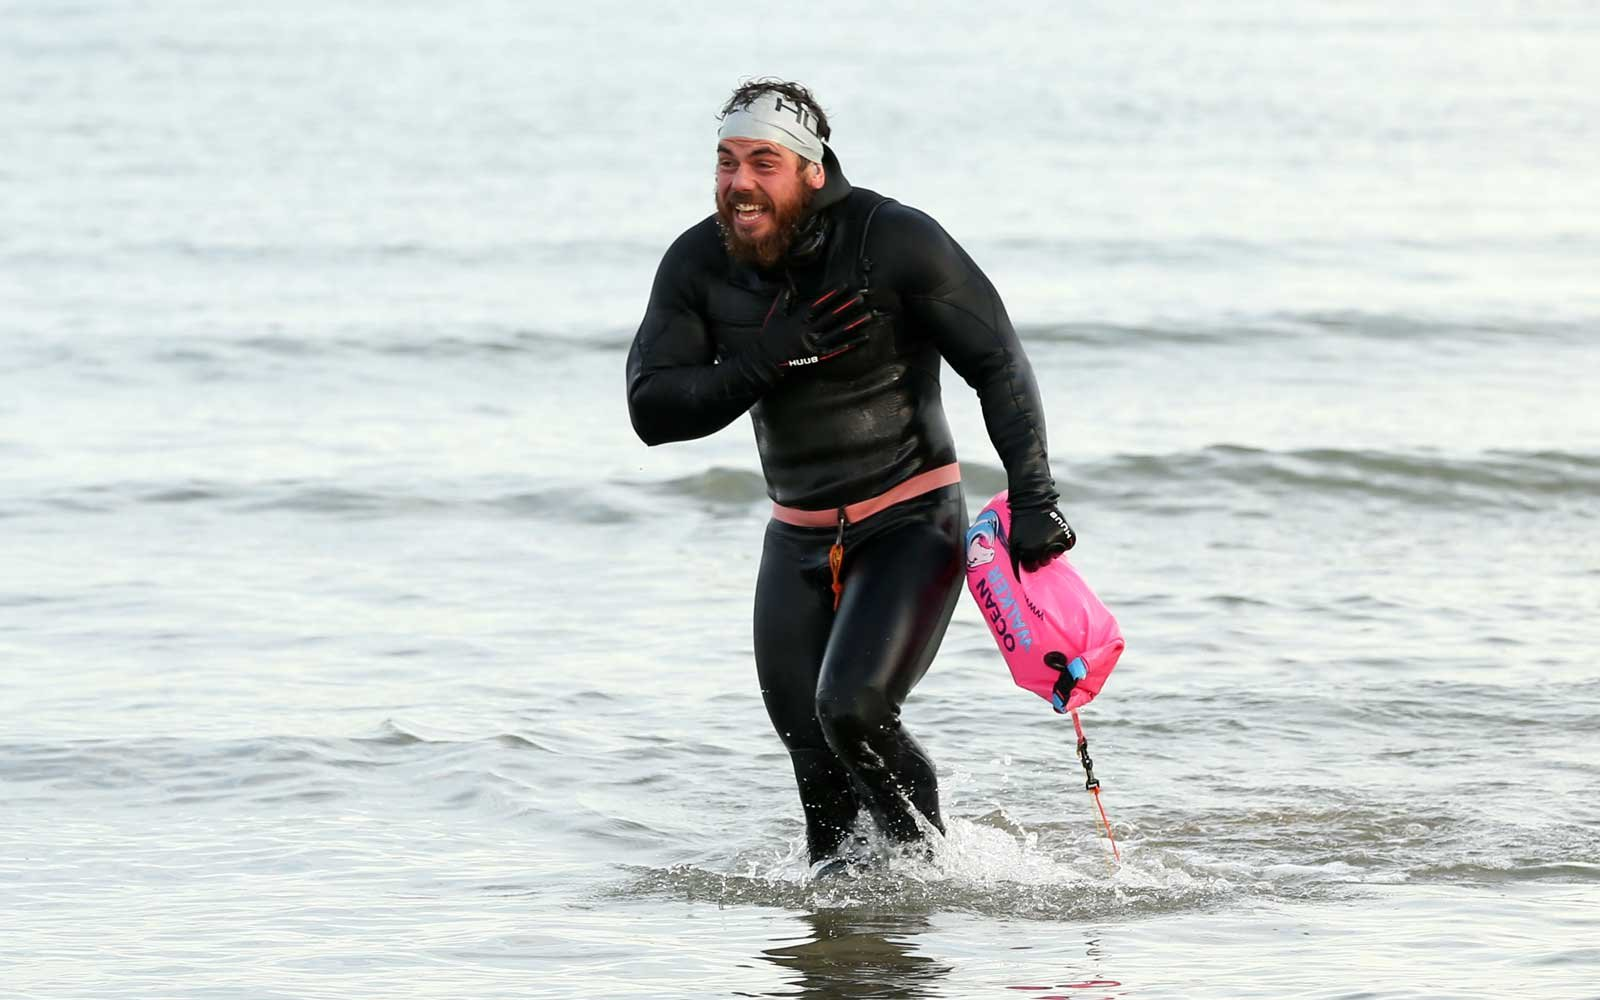 AND - NOVEMBER 04: Ross Edgley of England celebrates finishing his 'Great British Swim', an historic 2,000 mile swim around Great Britain on November 4, 2018 in Margate, England.